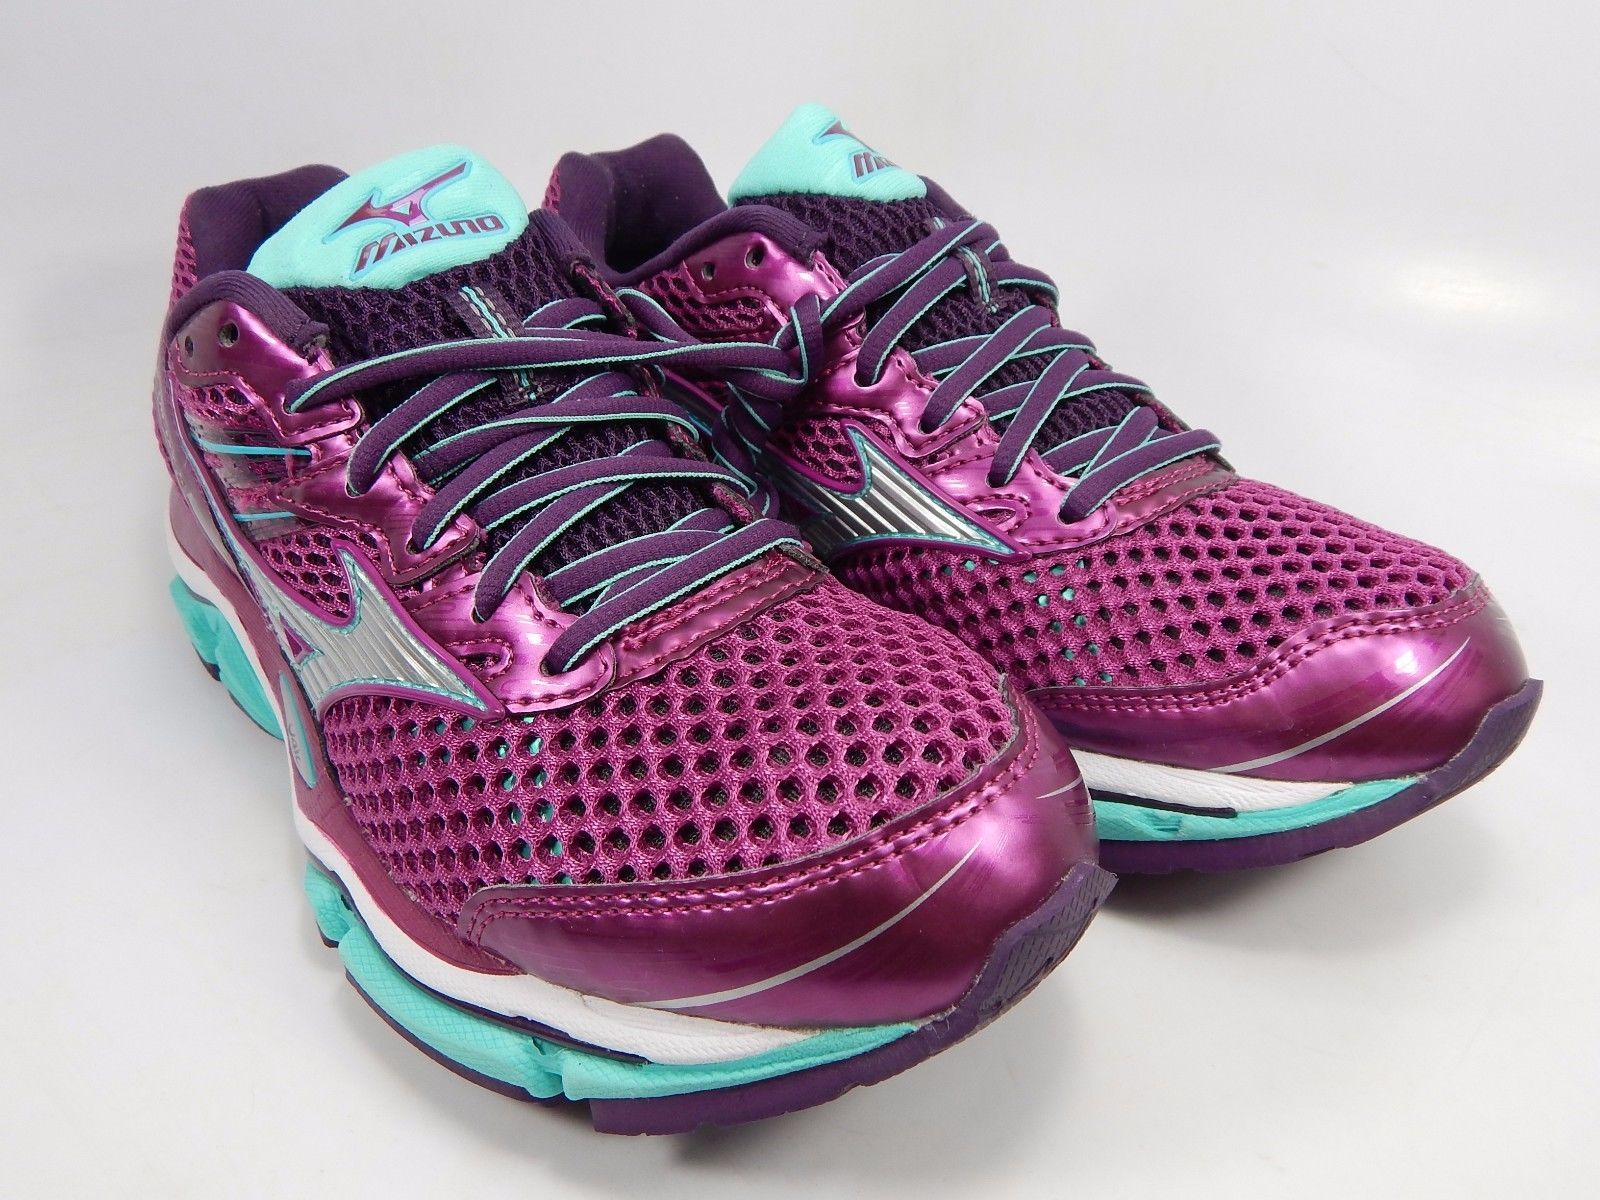 Mizuno Wave Enigma 5 Women's Running Shoes Size US 7 M (B) EU 37 Purple Green